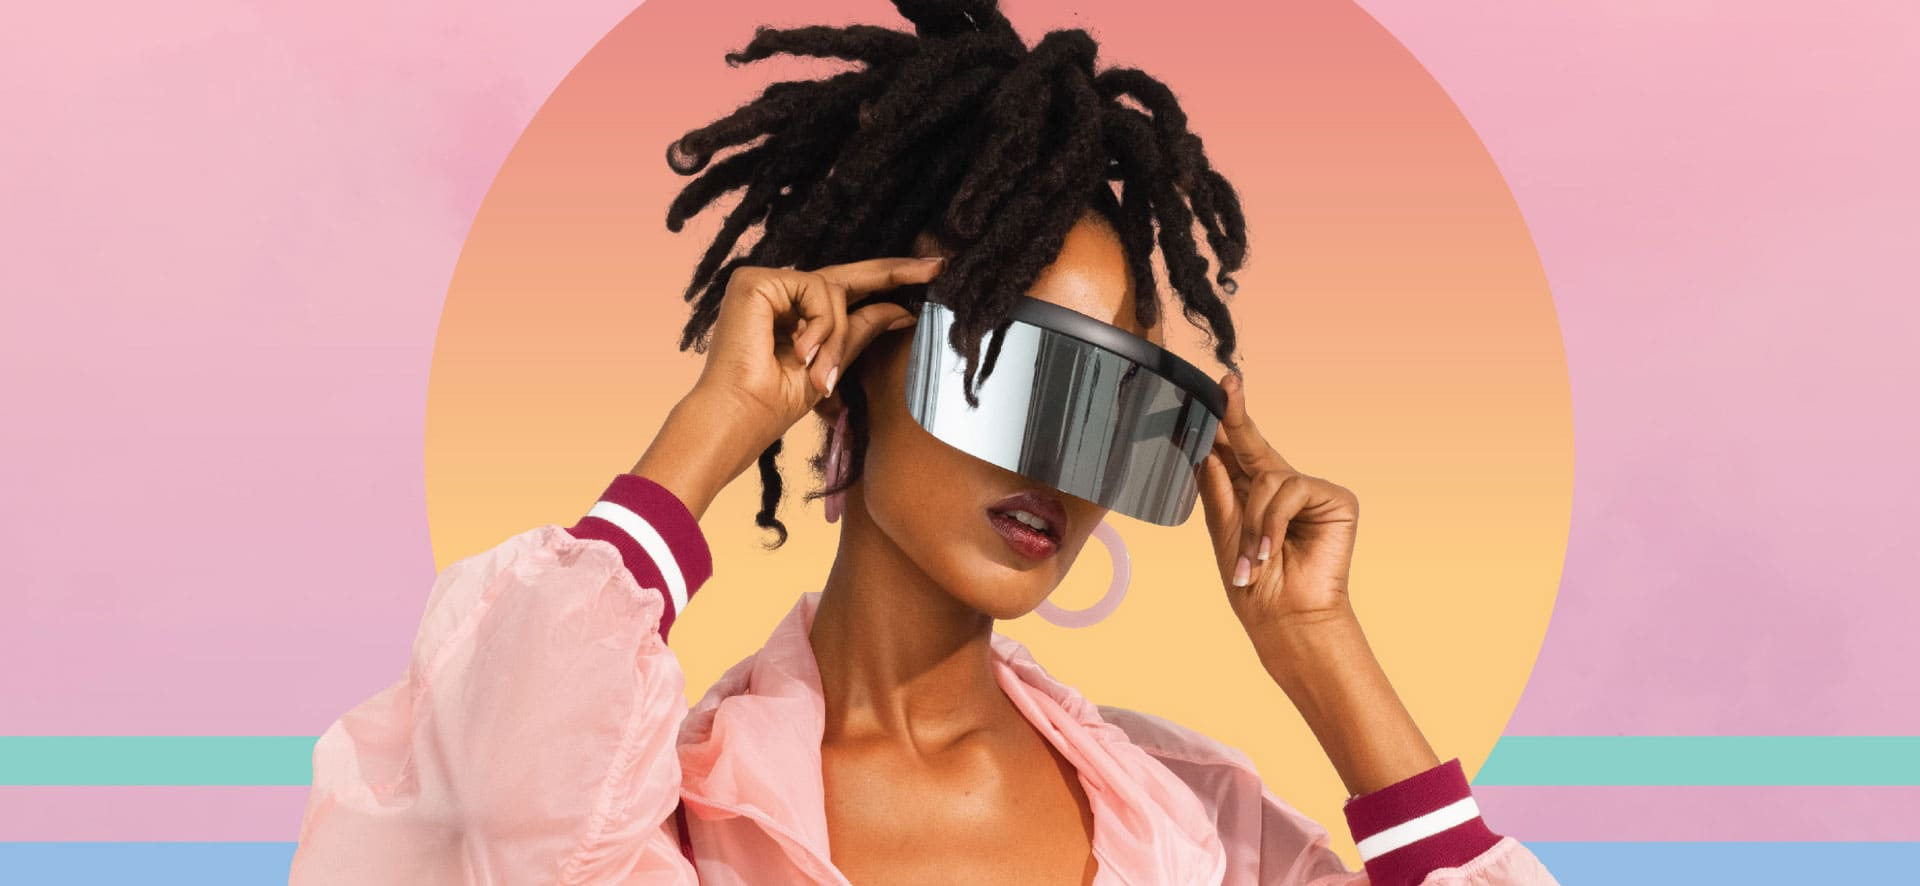 Woman with futuristic glasses posing in front of a colorful background.